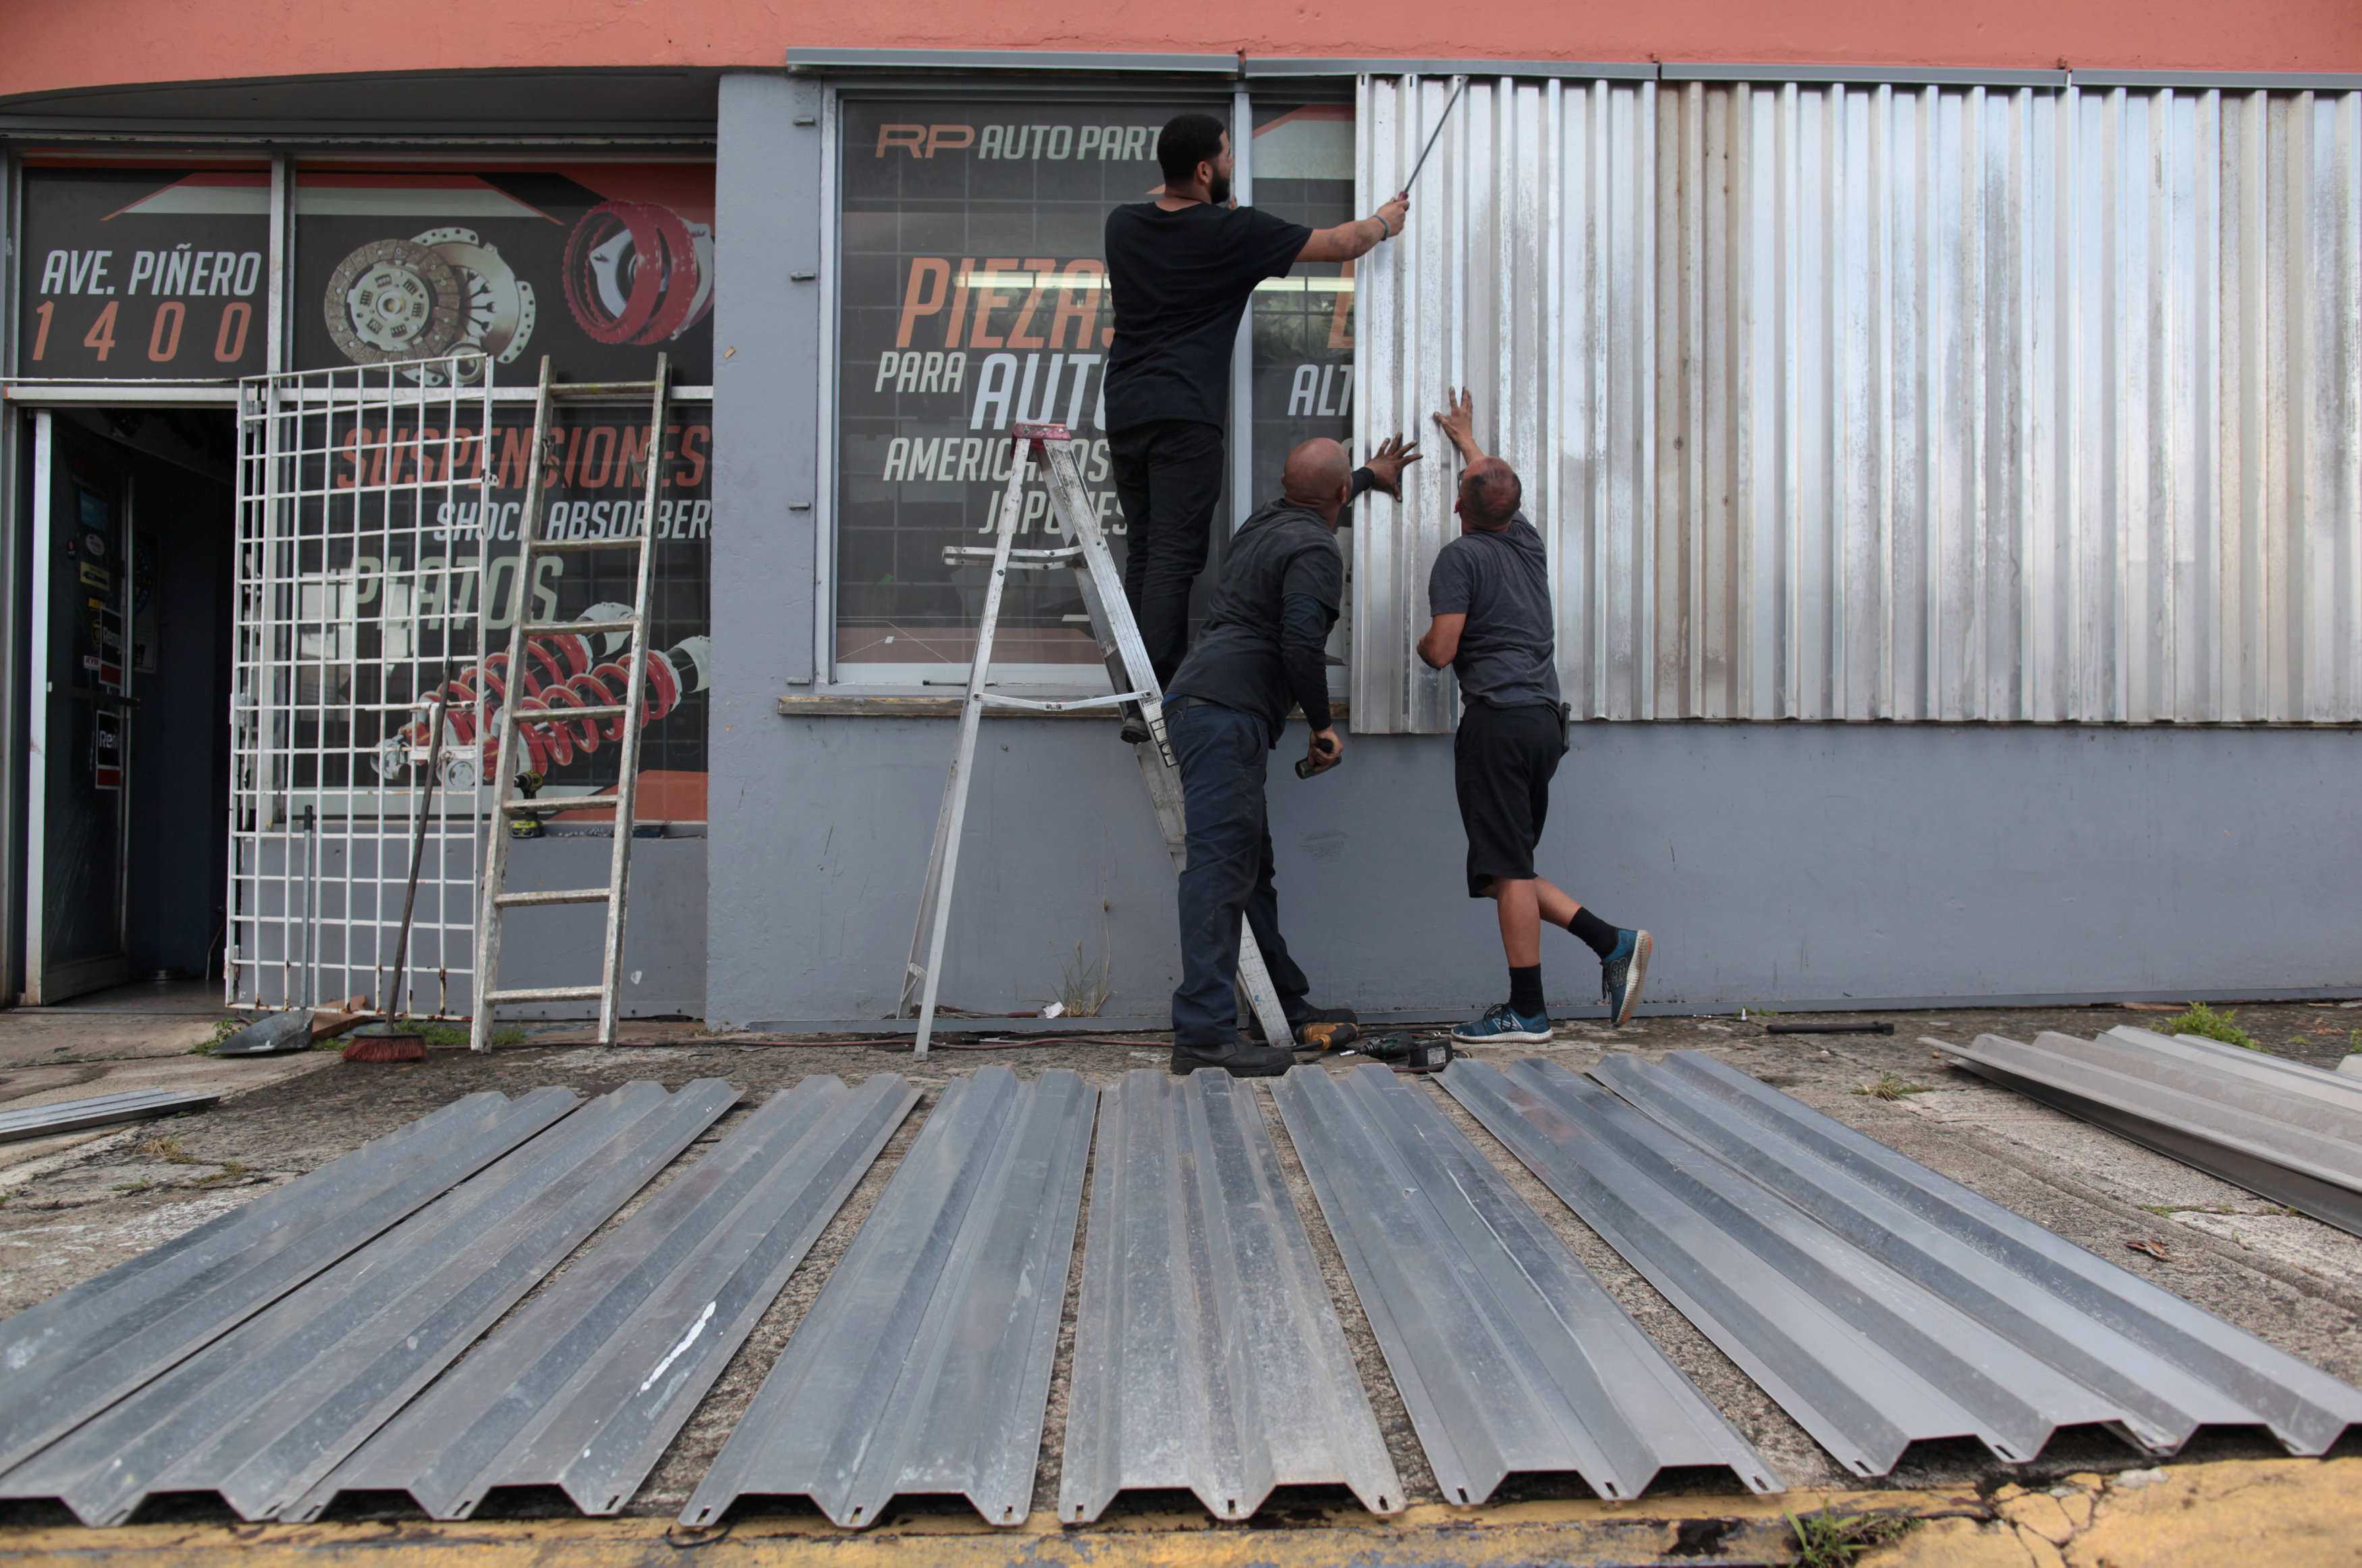 Men cover the windows of a car parts store in preparation for Hurricane Irma in San Juan, Puerto Rico on Sept. 5, 2017.  (REUTERS/Alvin Baez)